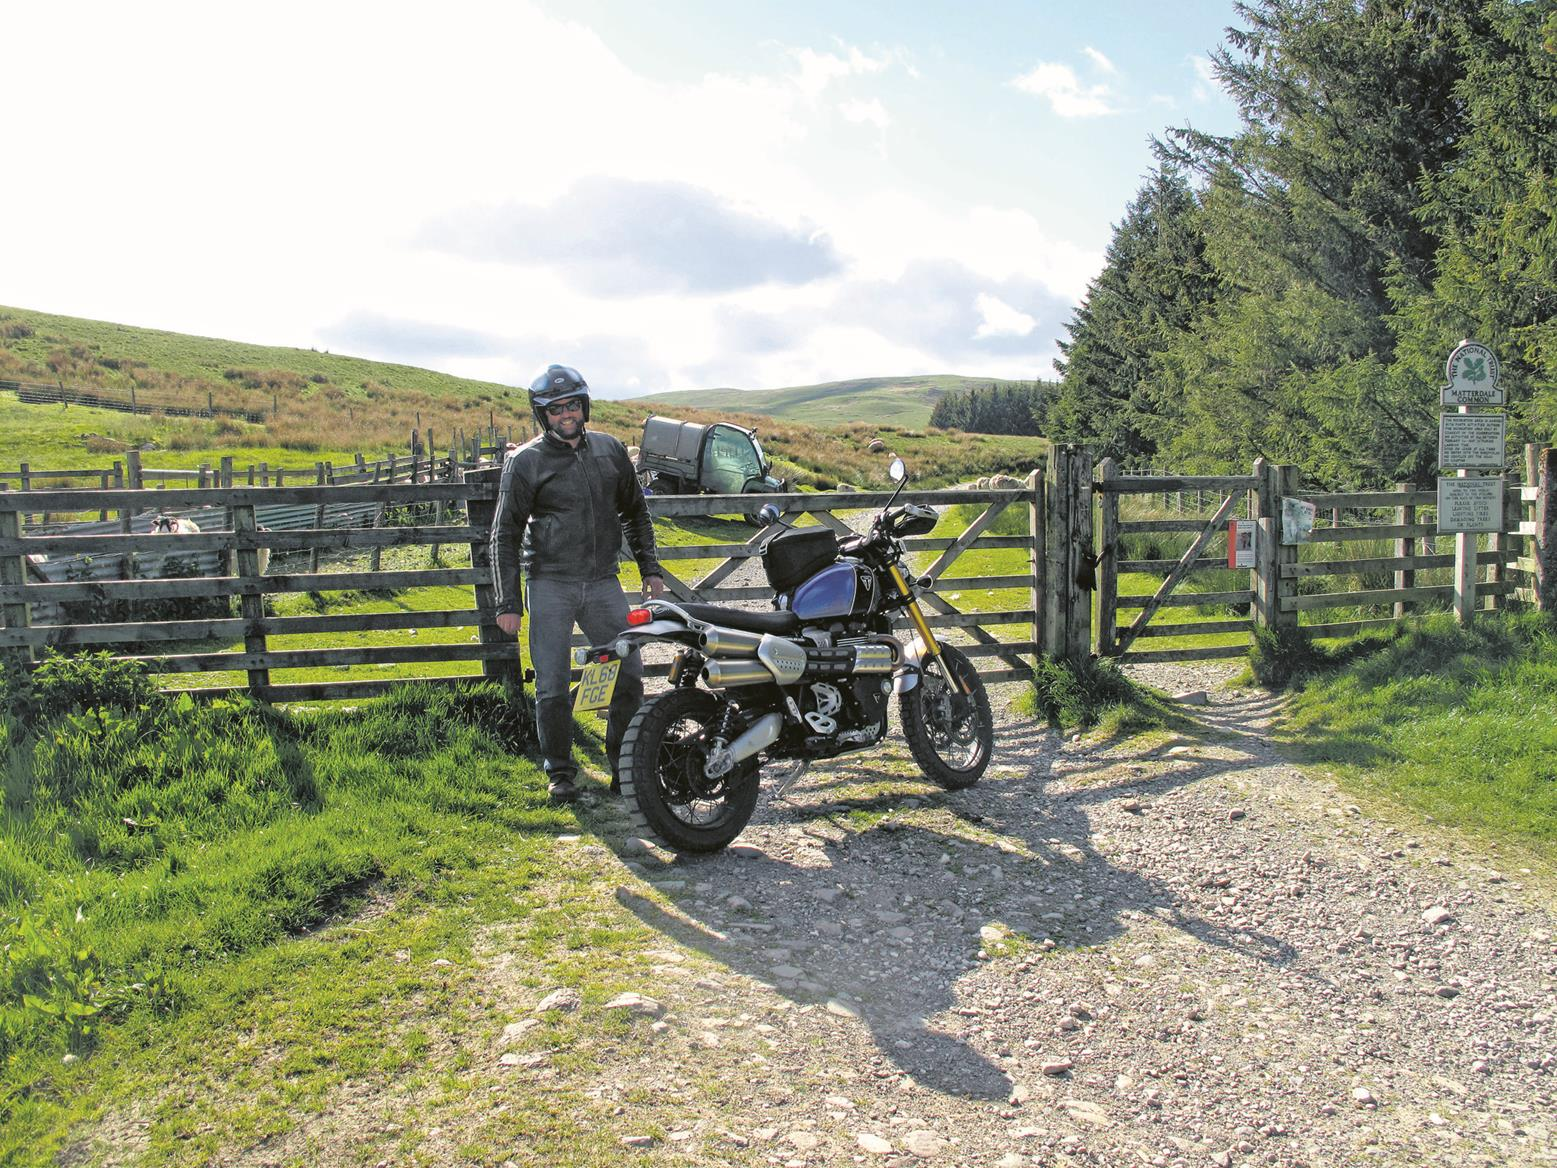 Heading for the green lanes on the Triumph Scrambler 1200 XE